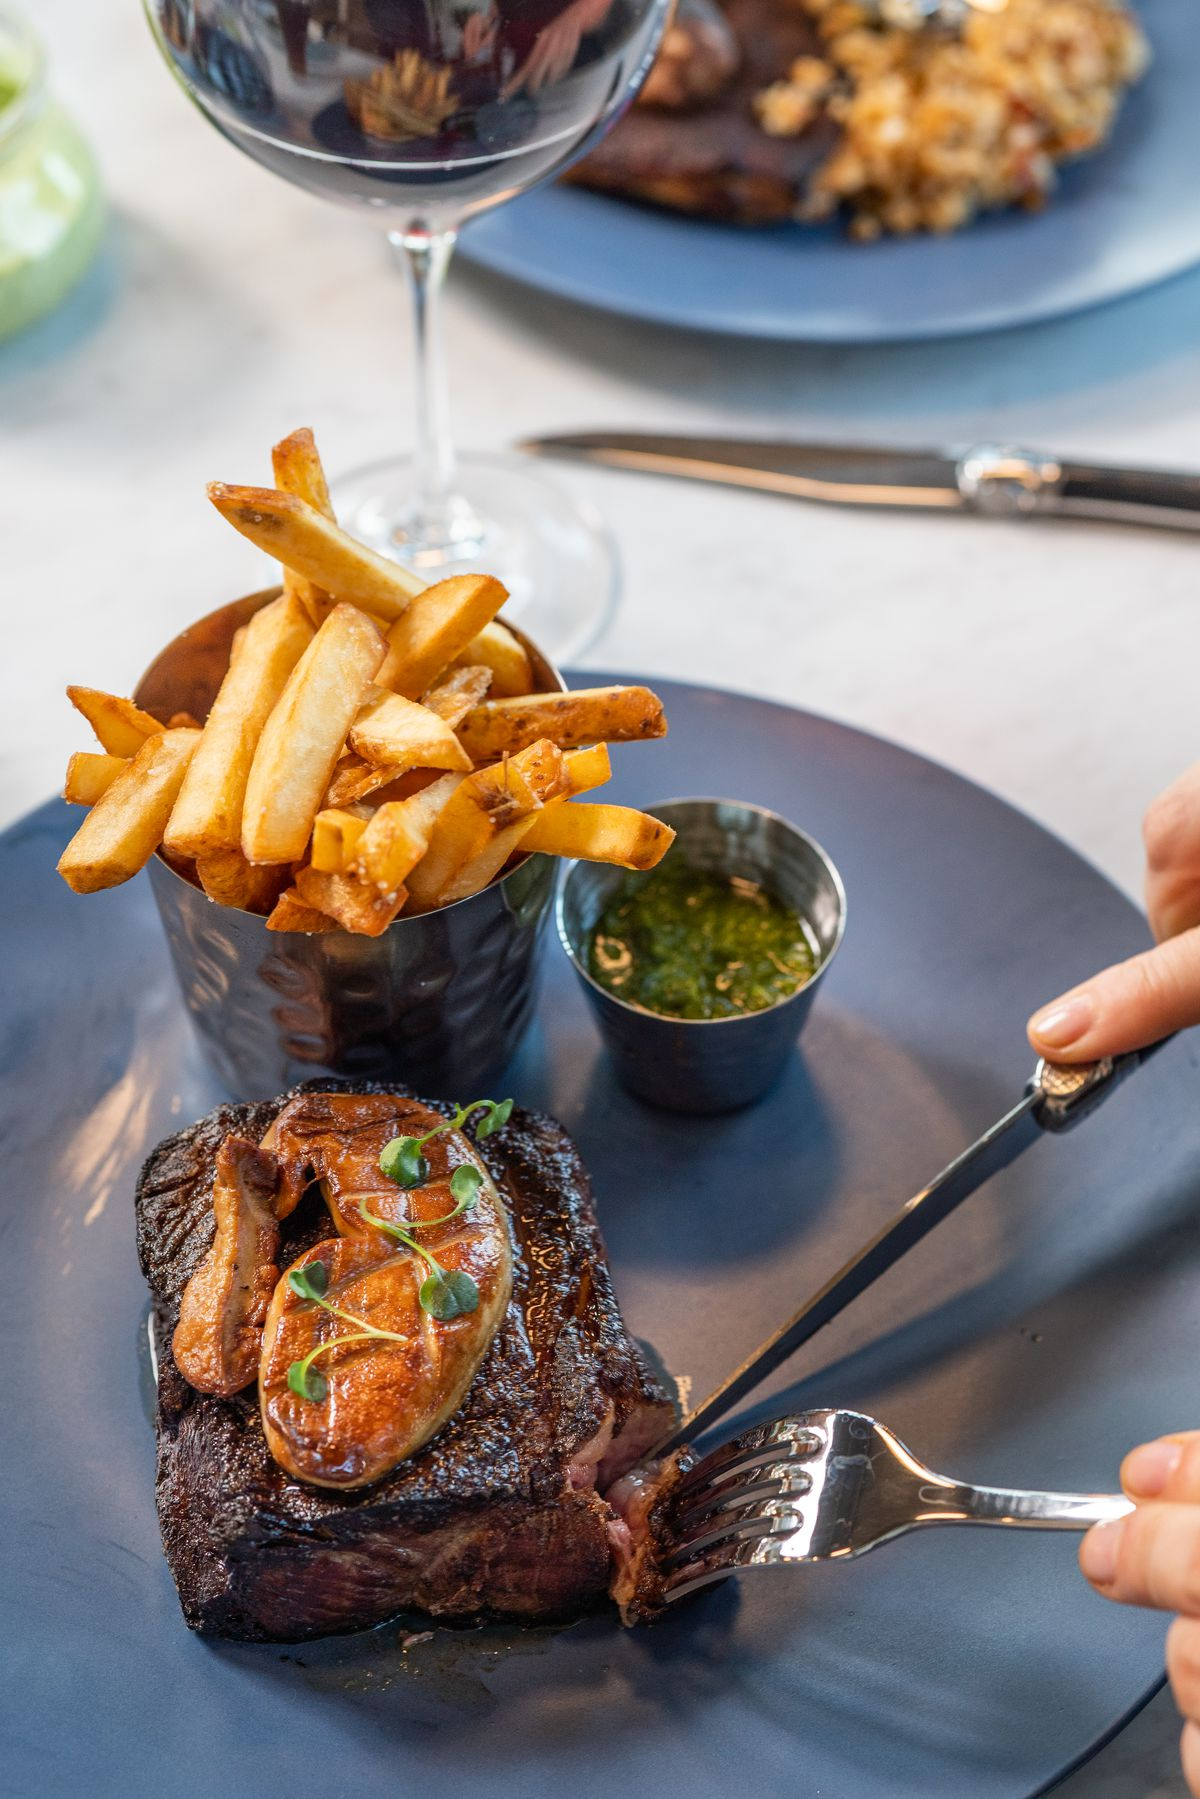 Steak frites with hanger steak, pomme frites, and garlic aioli from Le Vacher